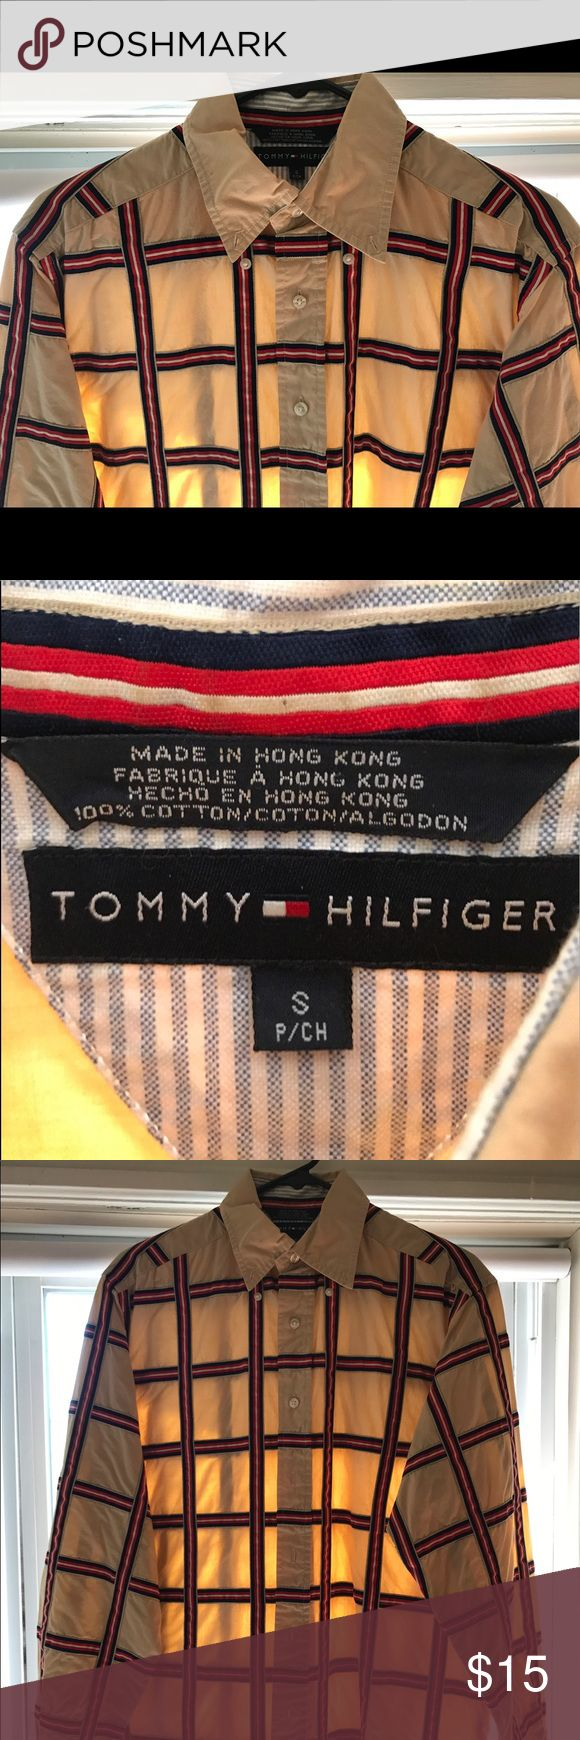 Tommy Hilfiger Dress Shirt **WERM'S WEARS** Great condition, used, Tommy Hilfiger Dress Shirt. Only worn a few days. Just not my style, could be yours though! FREE SHIPPING. Tommy Hilfiger Shirts Dress Shirts